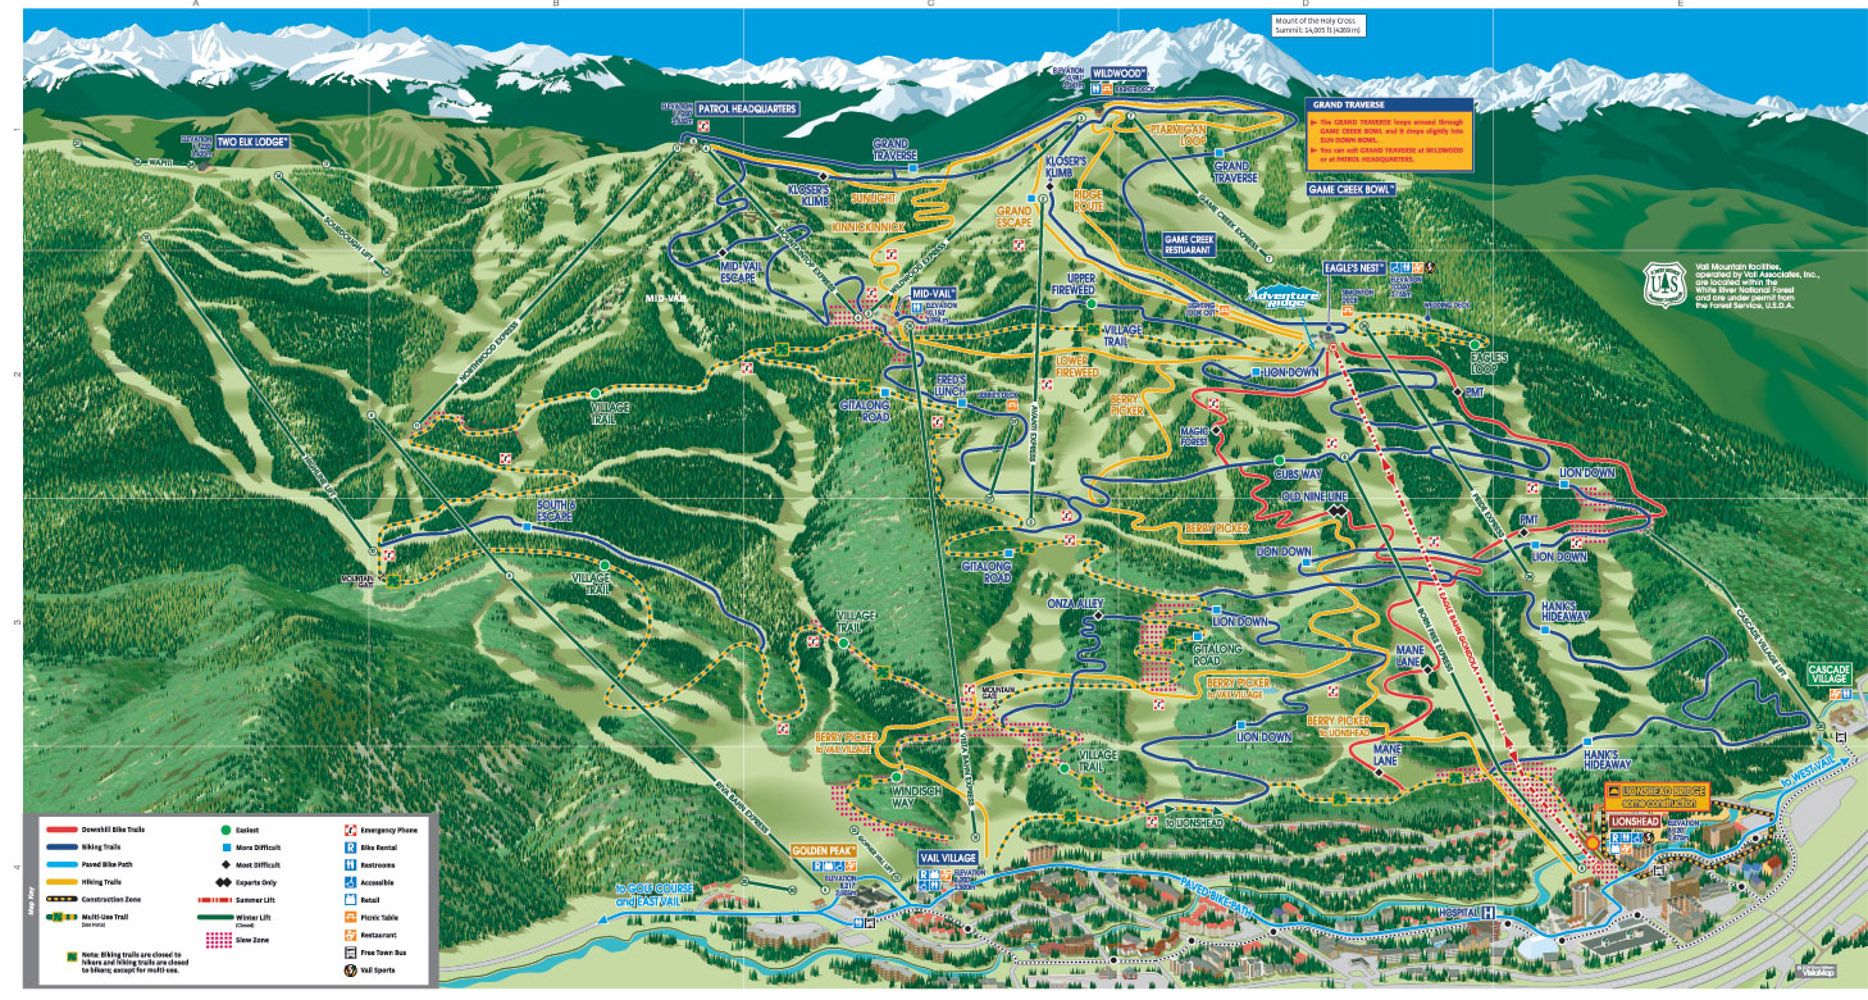 Vail 2009 Summer Trail Map